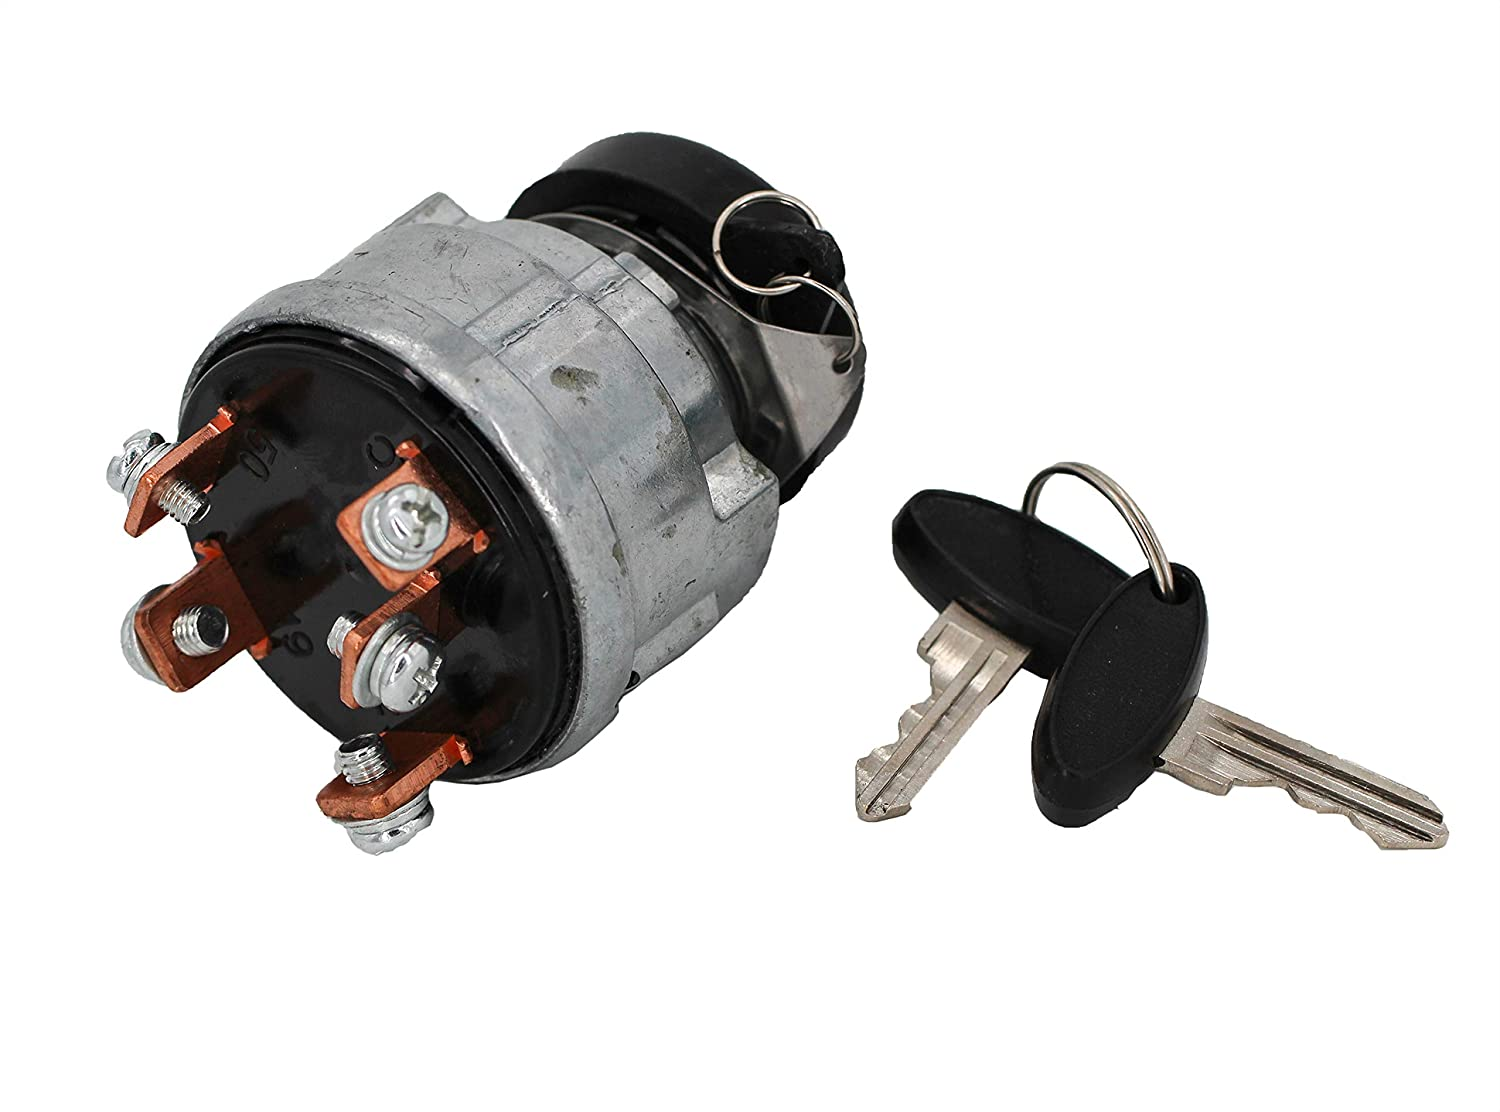 JEENDA Ignition Switch SBA385200331 83940565 SBA385200330 for Ford New Holland Shibaura Tractor 1000 1100 1110 1200 1210 1300 1310 1500 1510 1600 1700 1710 1900 1910 2110 CL25 35 45 55 65 Skid Steer